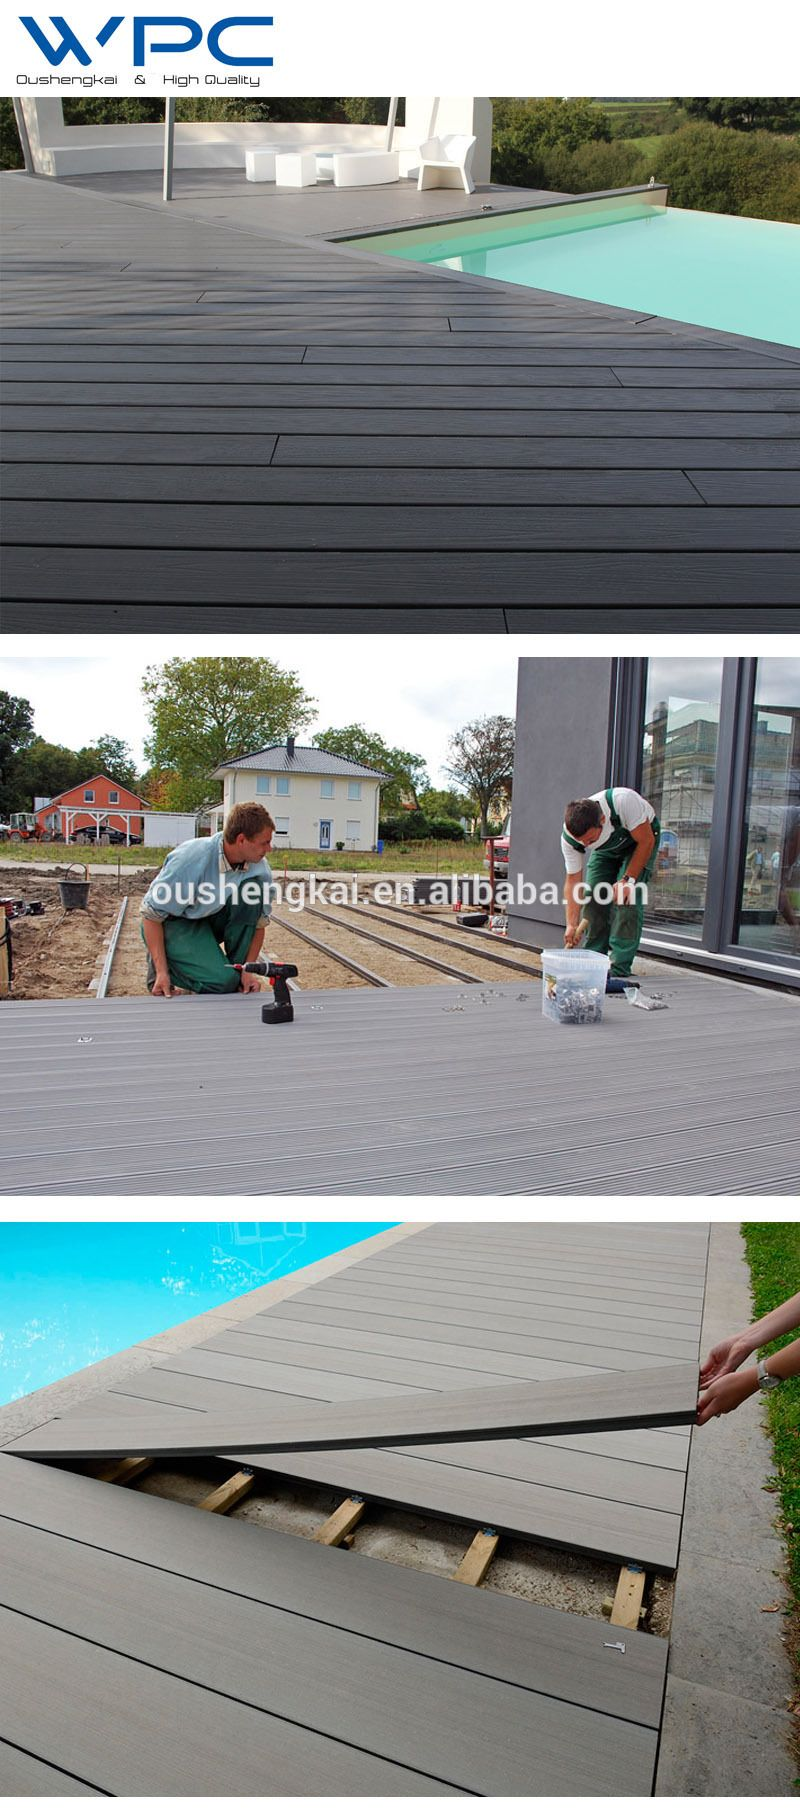 Cheap Price Wpc Waterproof Outdoor Deck Flooring - Buy ...